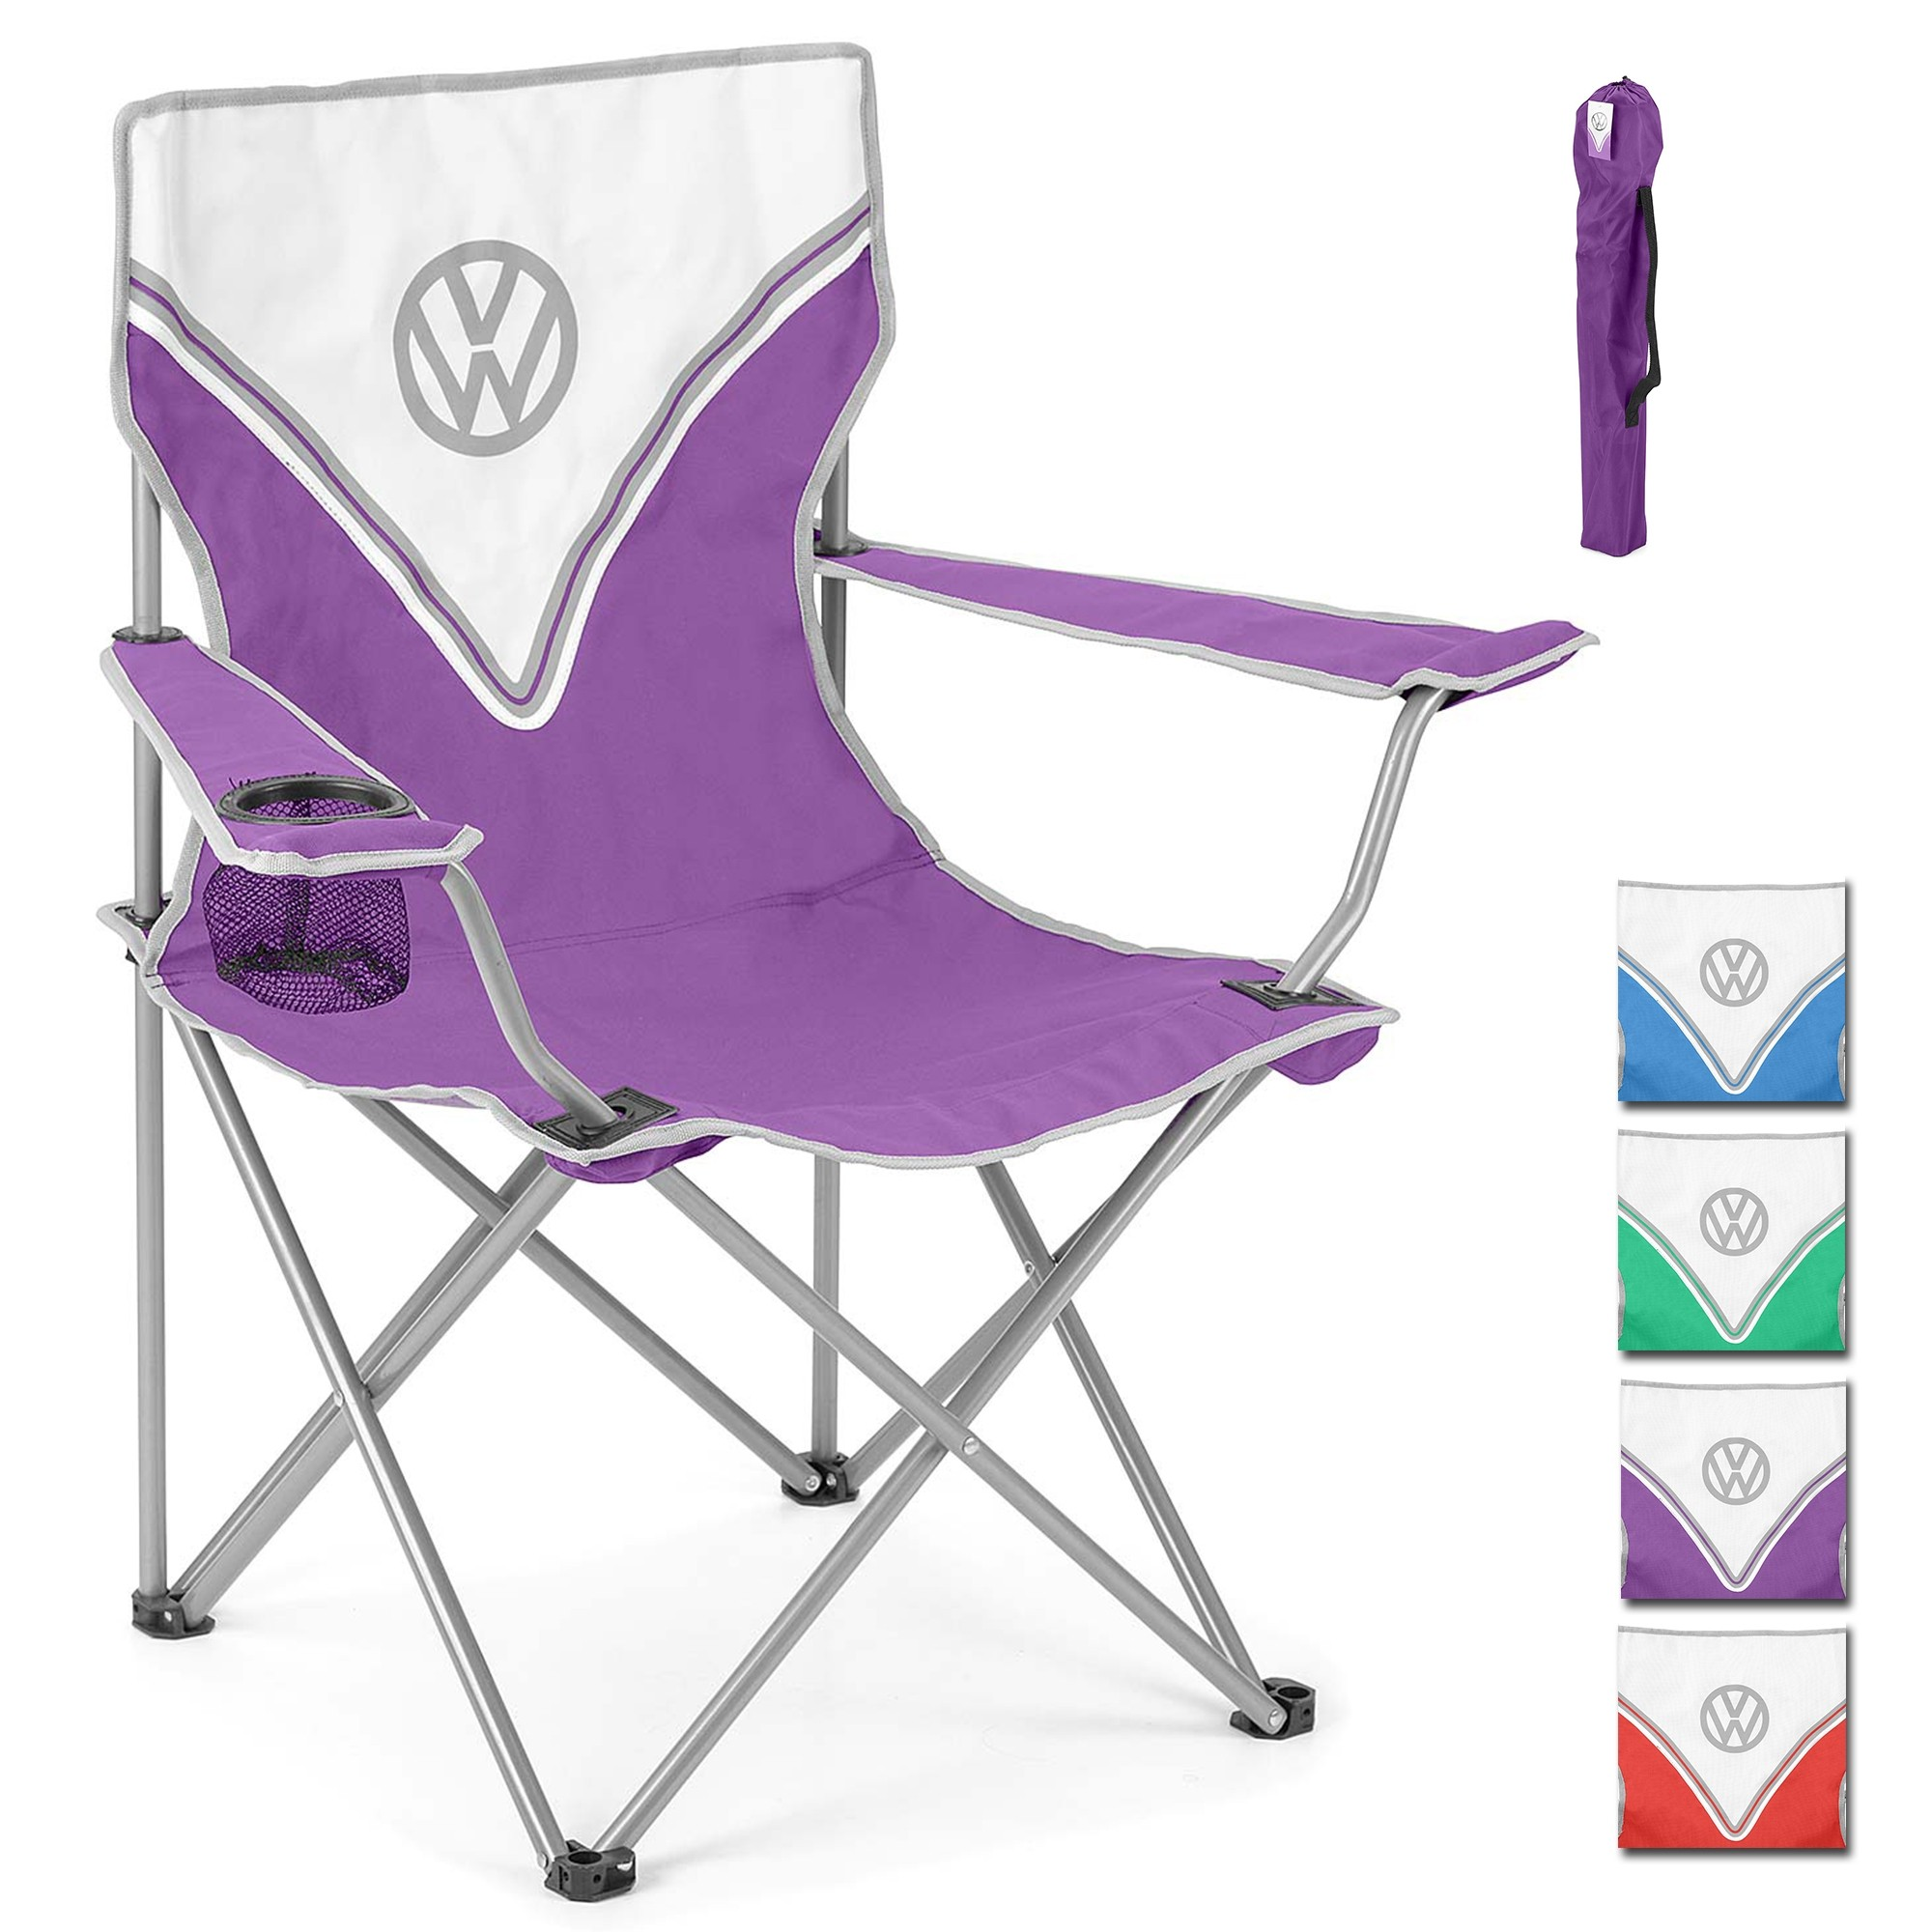 Volkswagen Vw Folding Camping Chair Lightweight Portable Heavy Duty With Cup Holder Campervan Accessories Gifts For